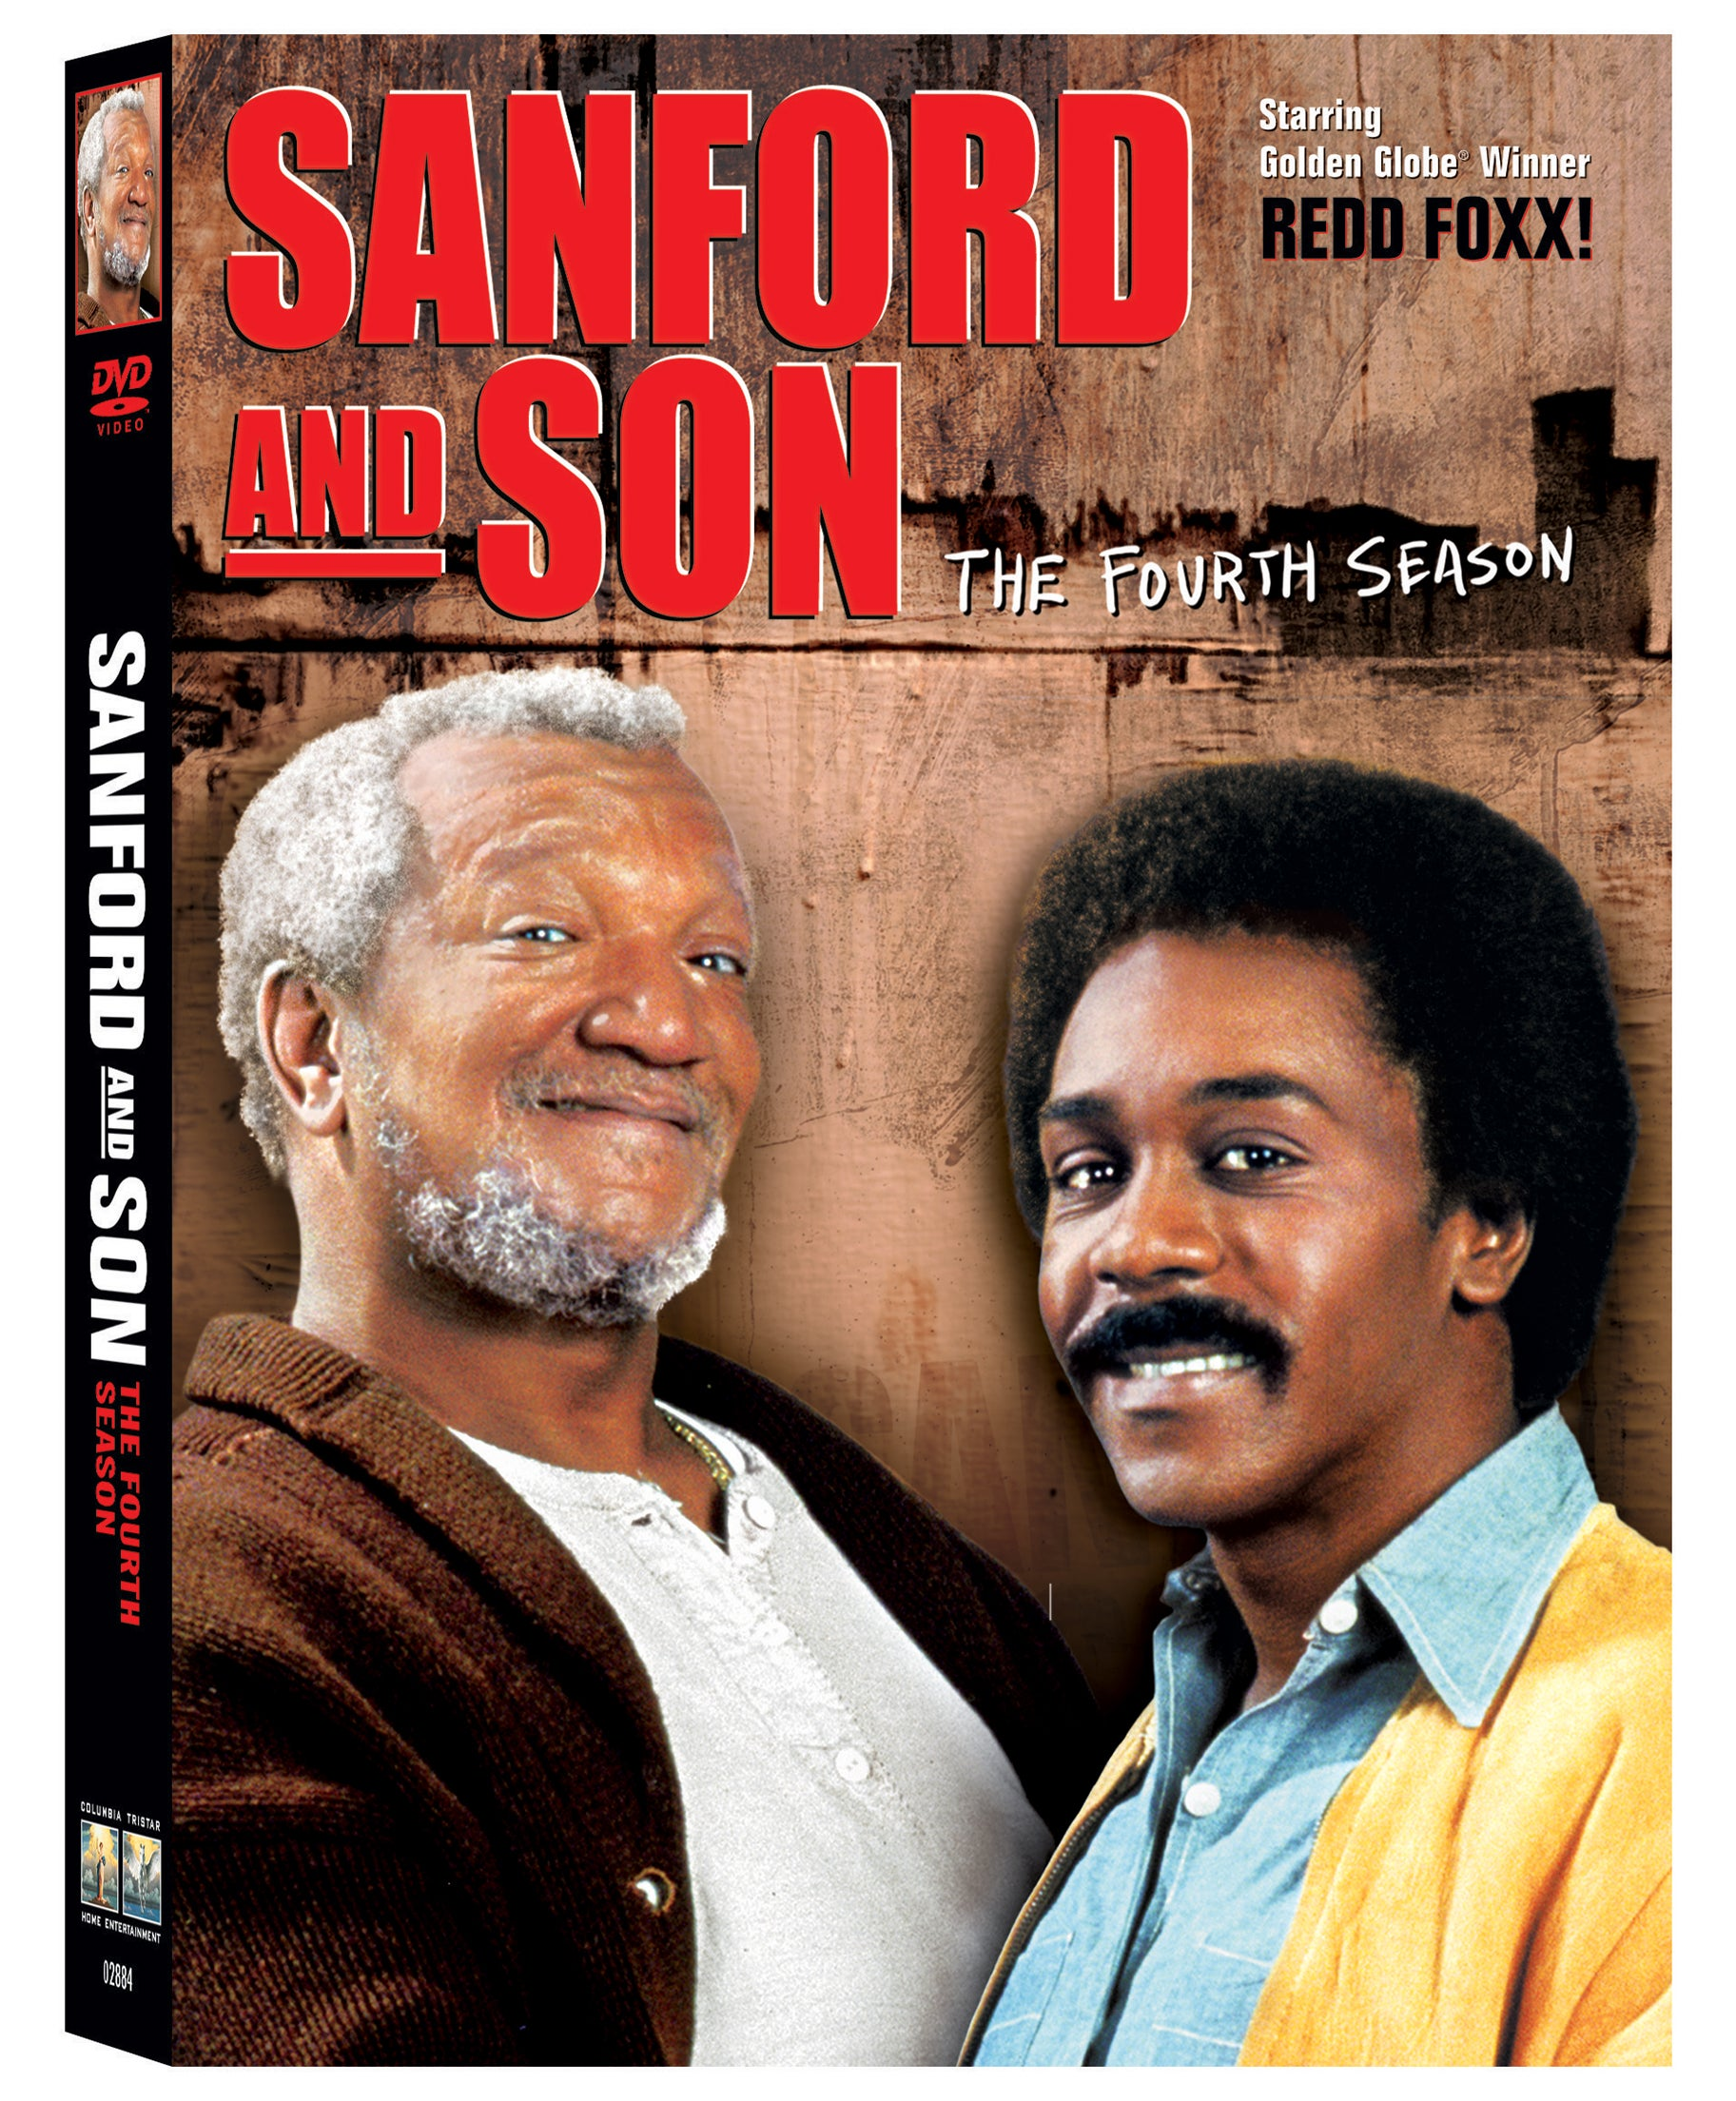 Sanford & Son: The Fourth Season (DVD)